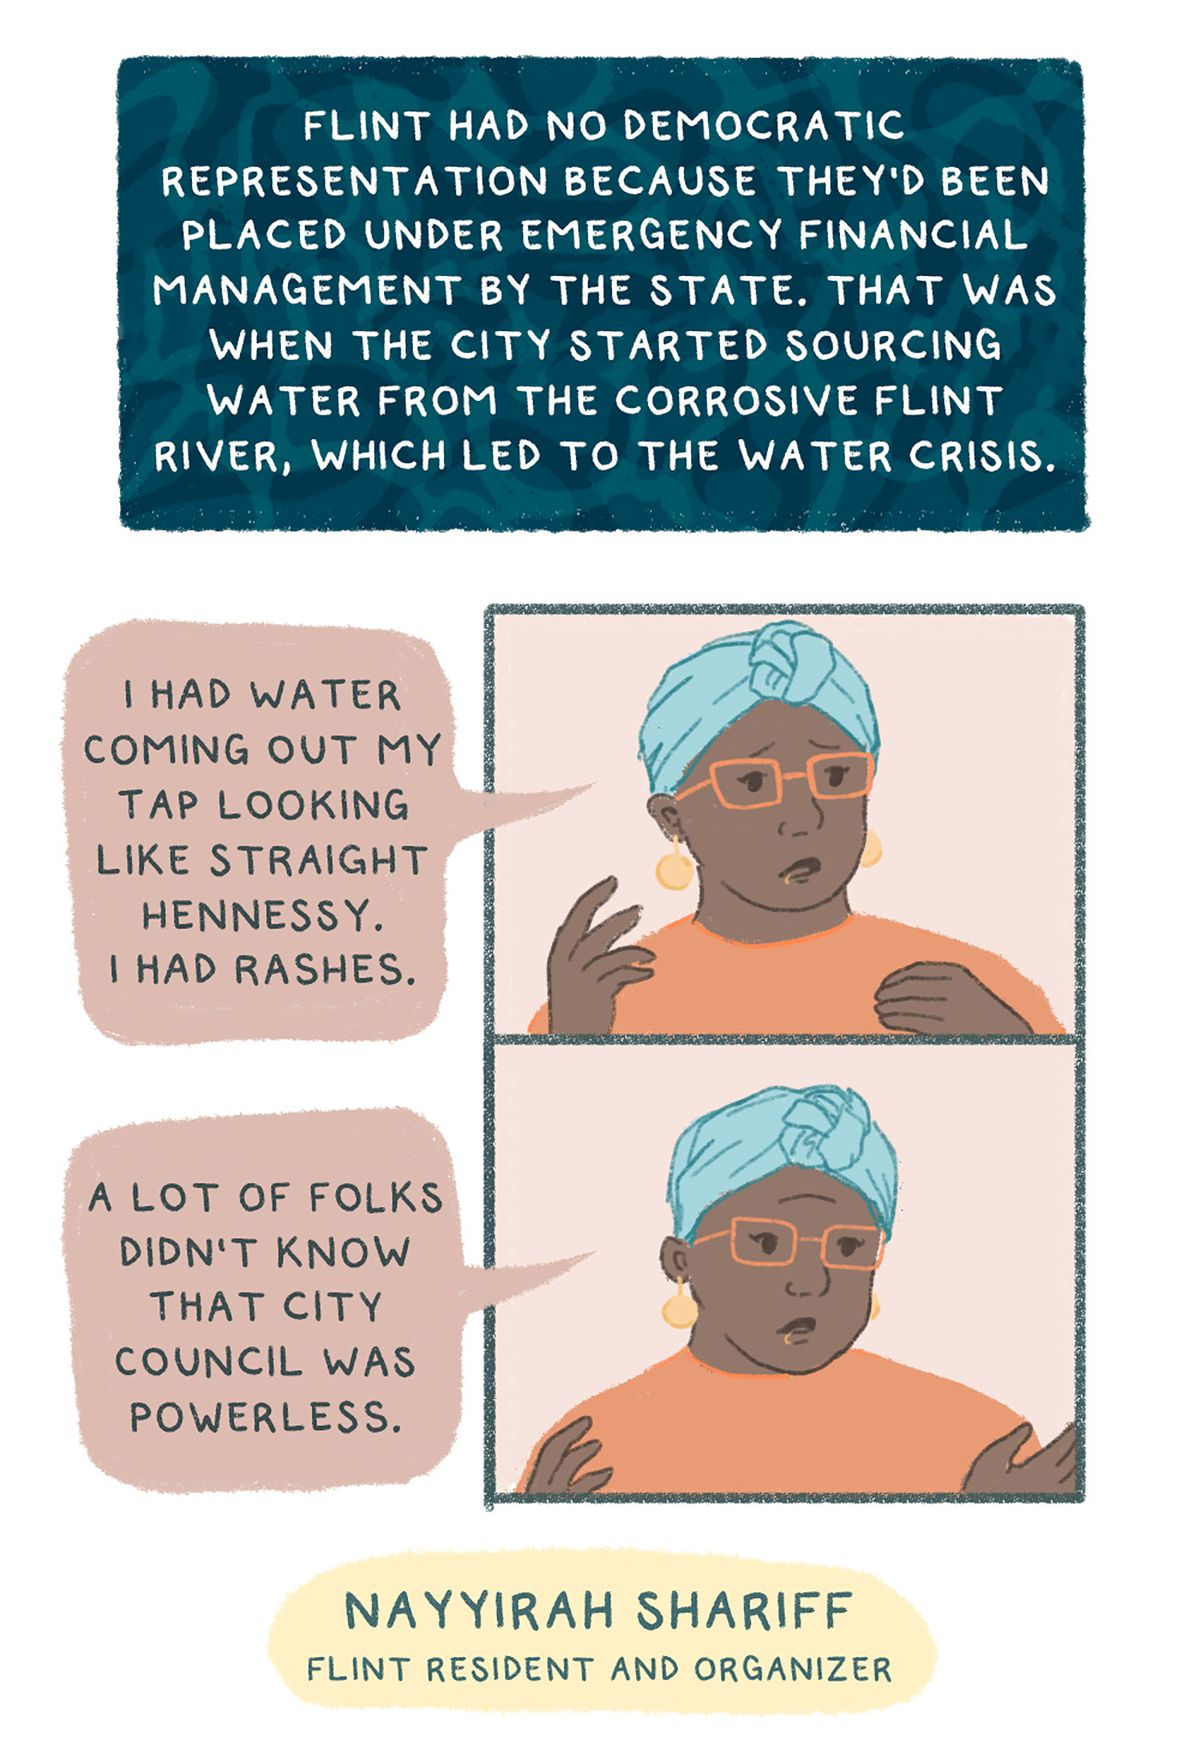 """""""Flint had no democratic representation because they'd been placed under emergency financial management by the state. That was when the city started sourcing water from the corrosive Flint River, which led to the water crisis.""""I had water coming out my tap looking like straight Hennessy,"""" remembers Flint resident and organizer Nayyirah Shariff. """"I had rashes. A lot of folks didn't know that city council was powerless."""""""